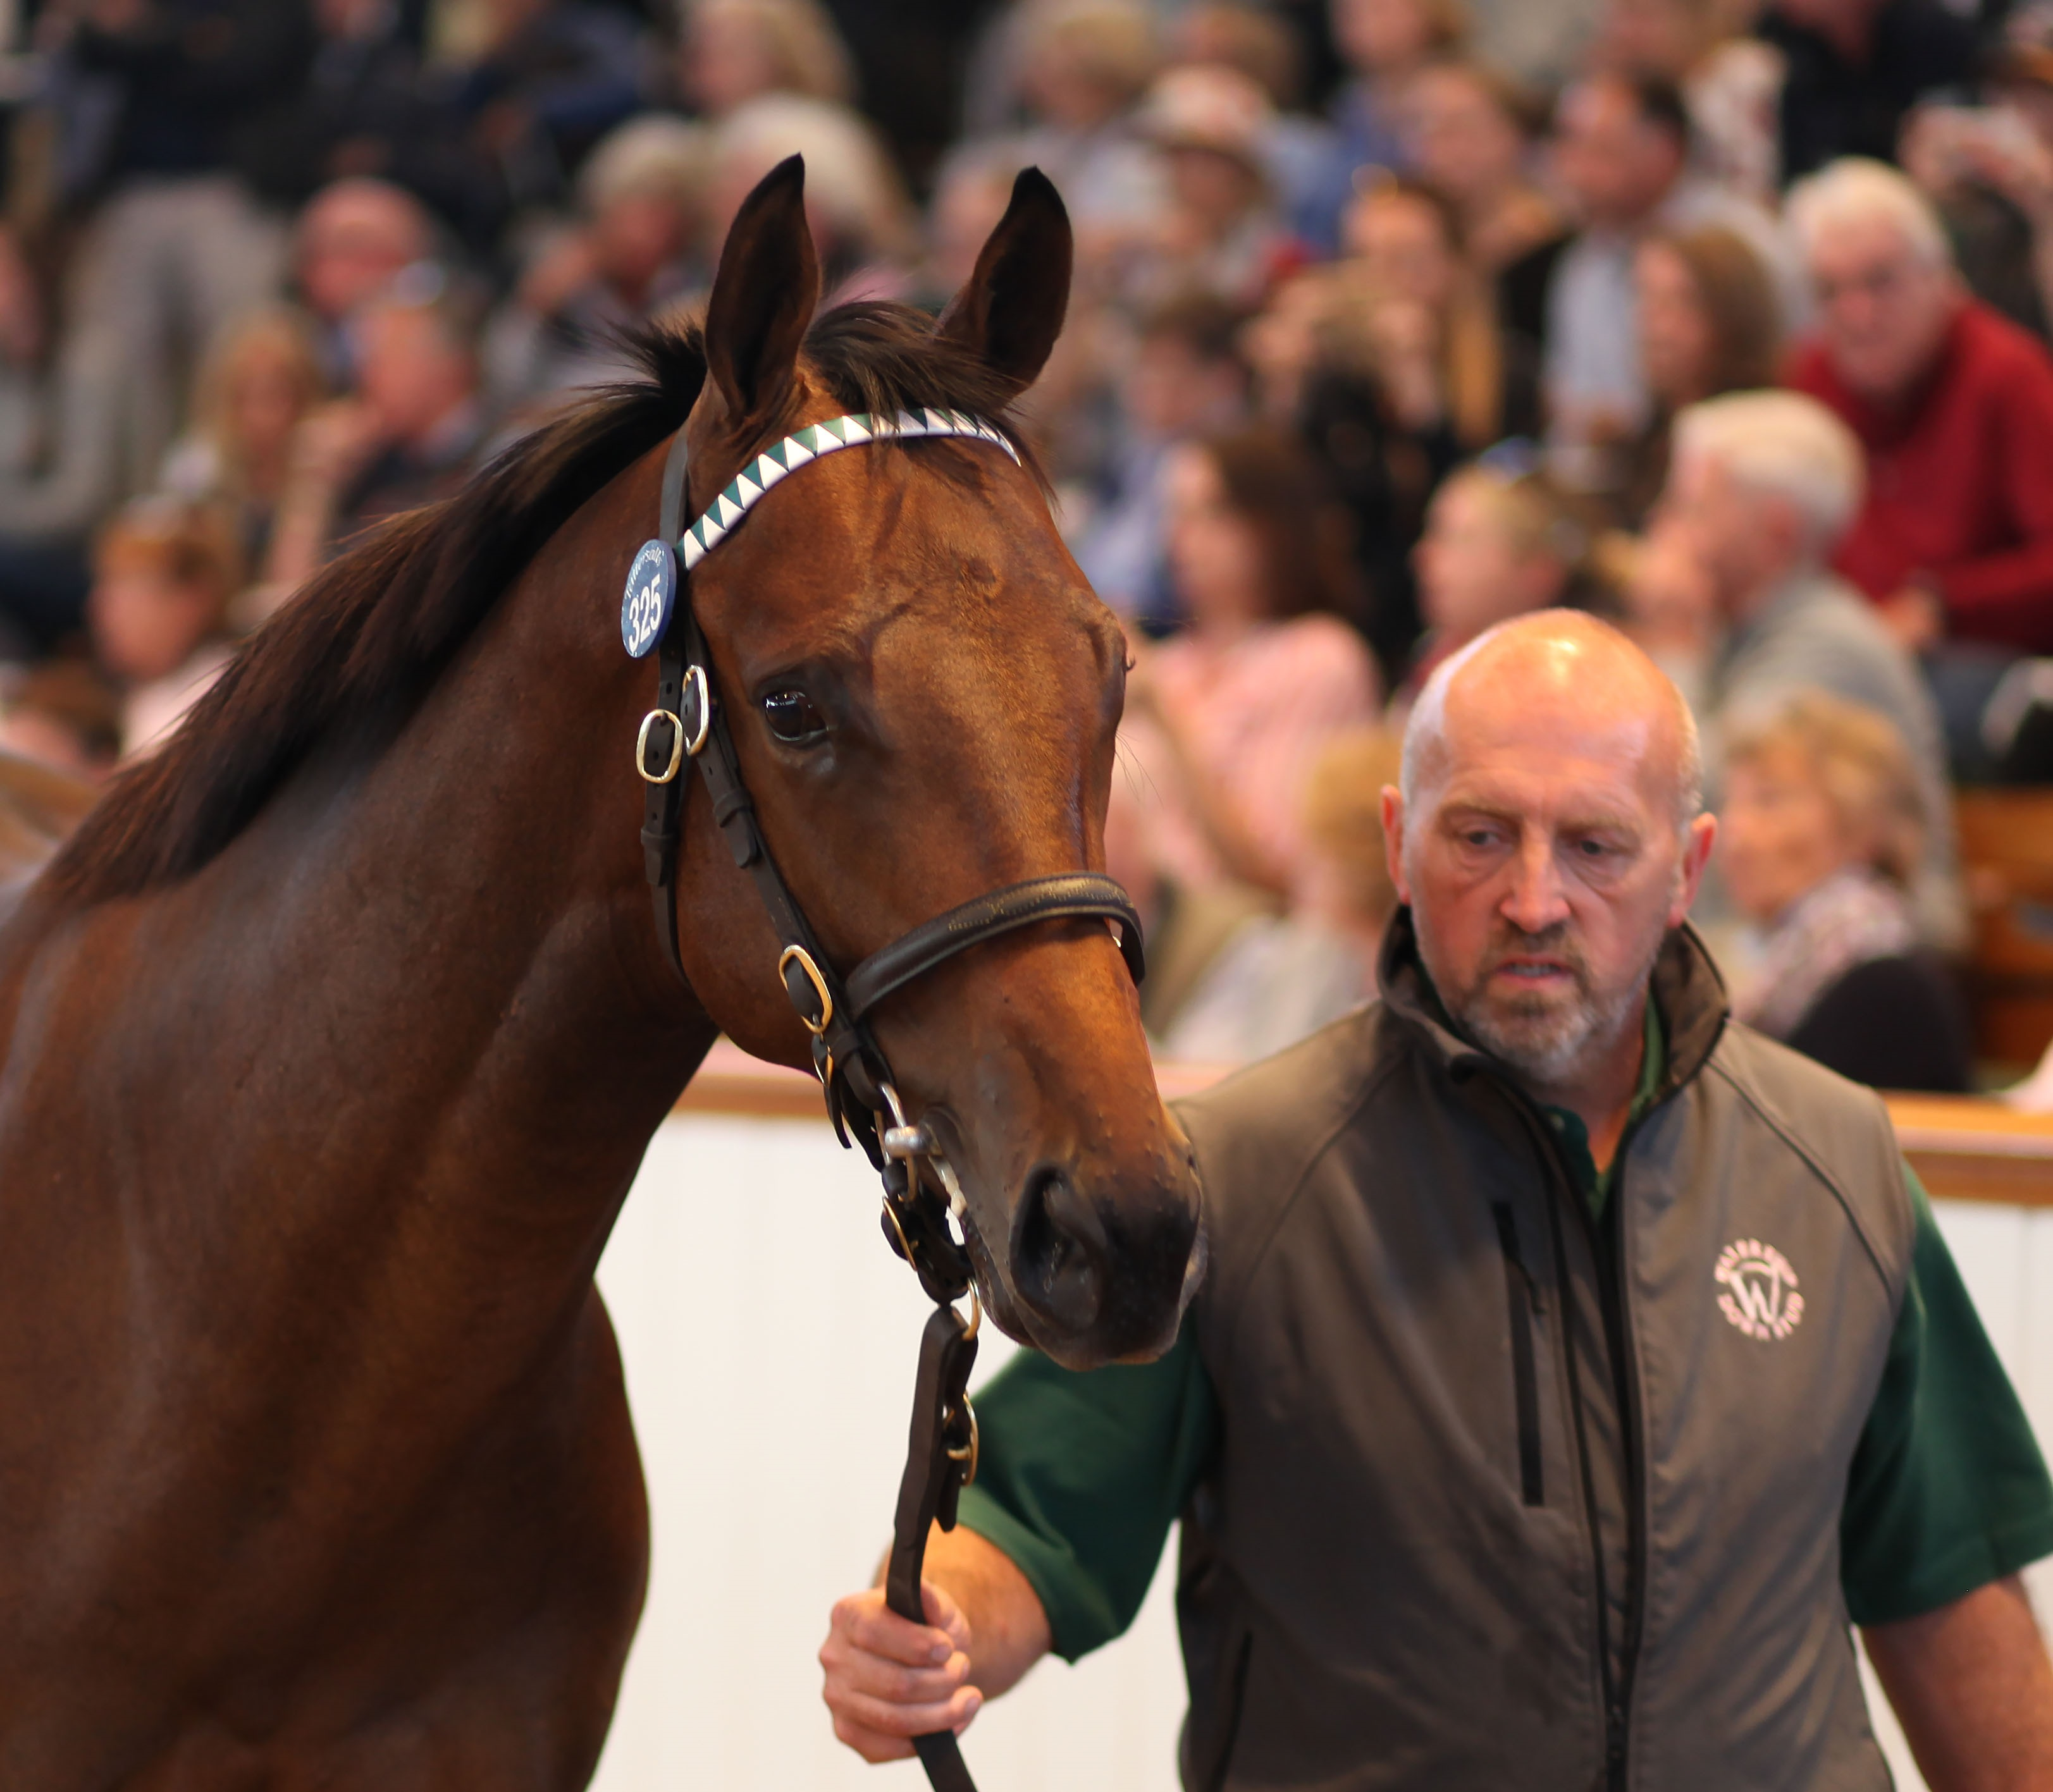 The striking Dubawi colt that went for 3.5million guineas at the sales in Newmarket